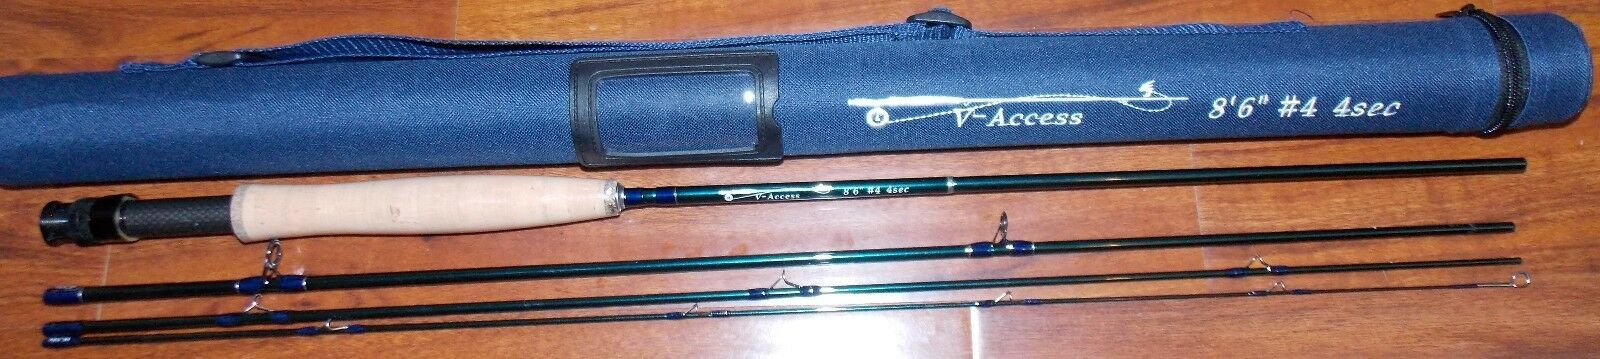 4 WT V-Access  Fly Fishing Rod  8 1 2 ft  4 Sec. with Tube  Libre 3 DAY SHIPPING